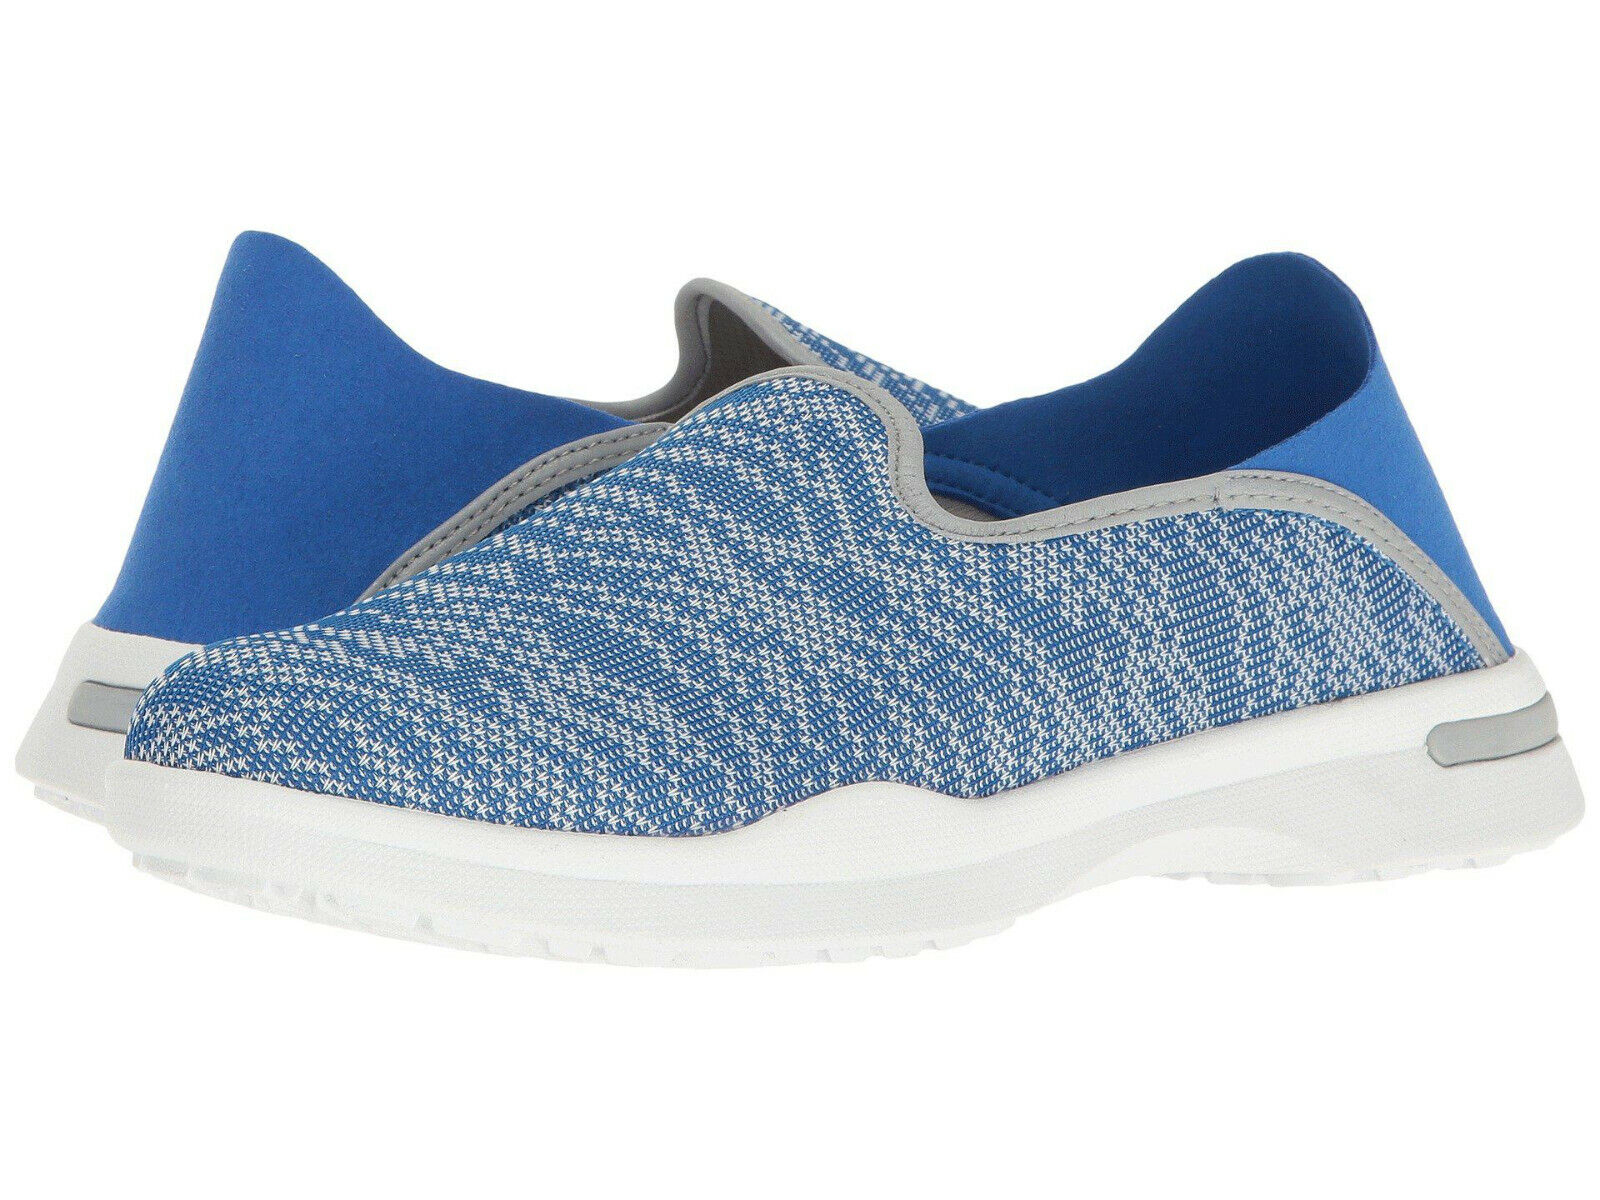 Softwalk Softwalk Softwalk SIMBA damen Blau Knit Slip On Comfort Lightweight Walking schuhe 7208de